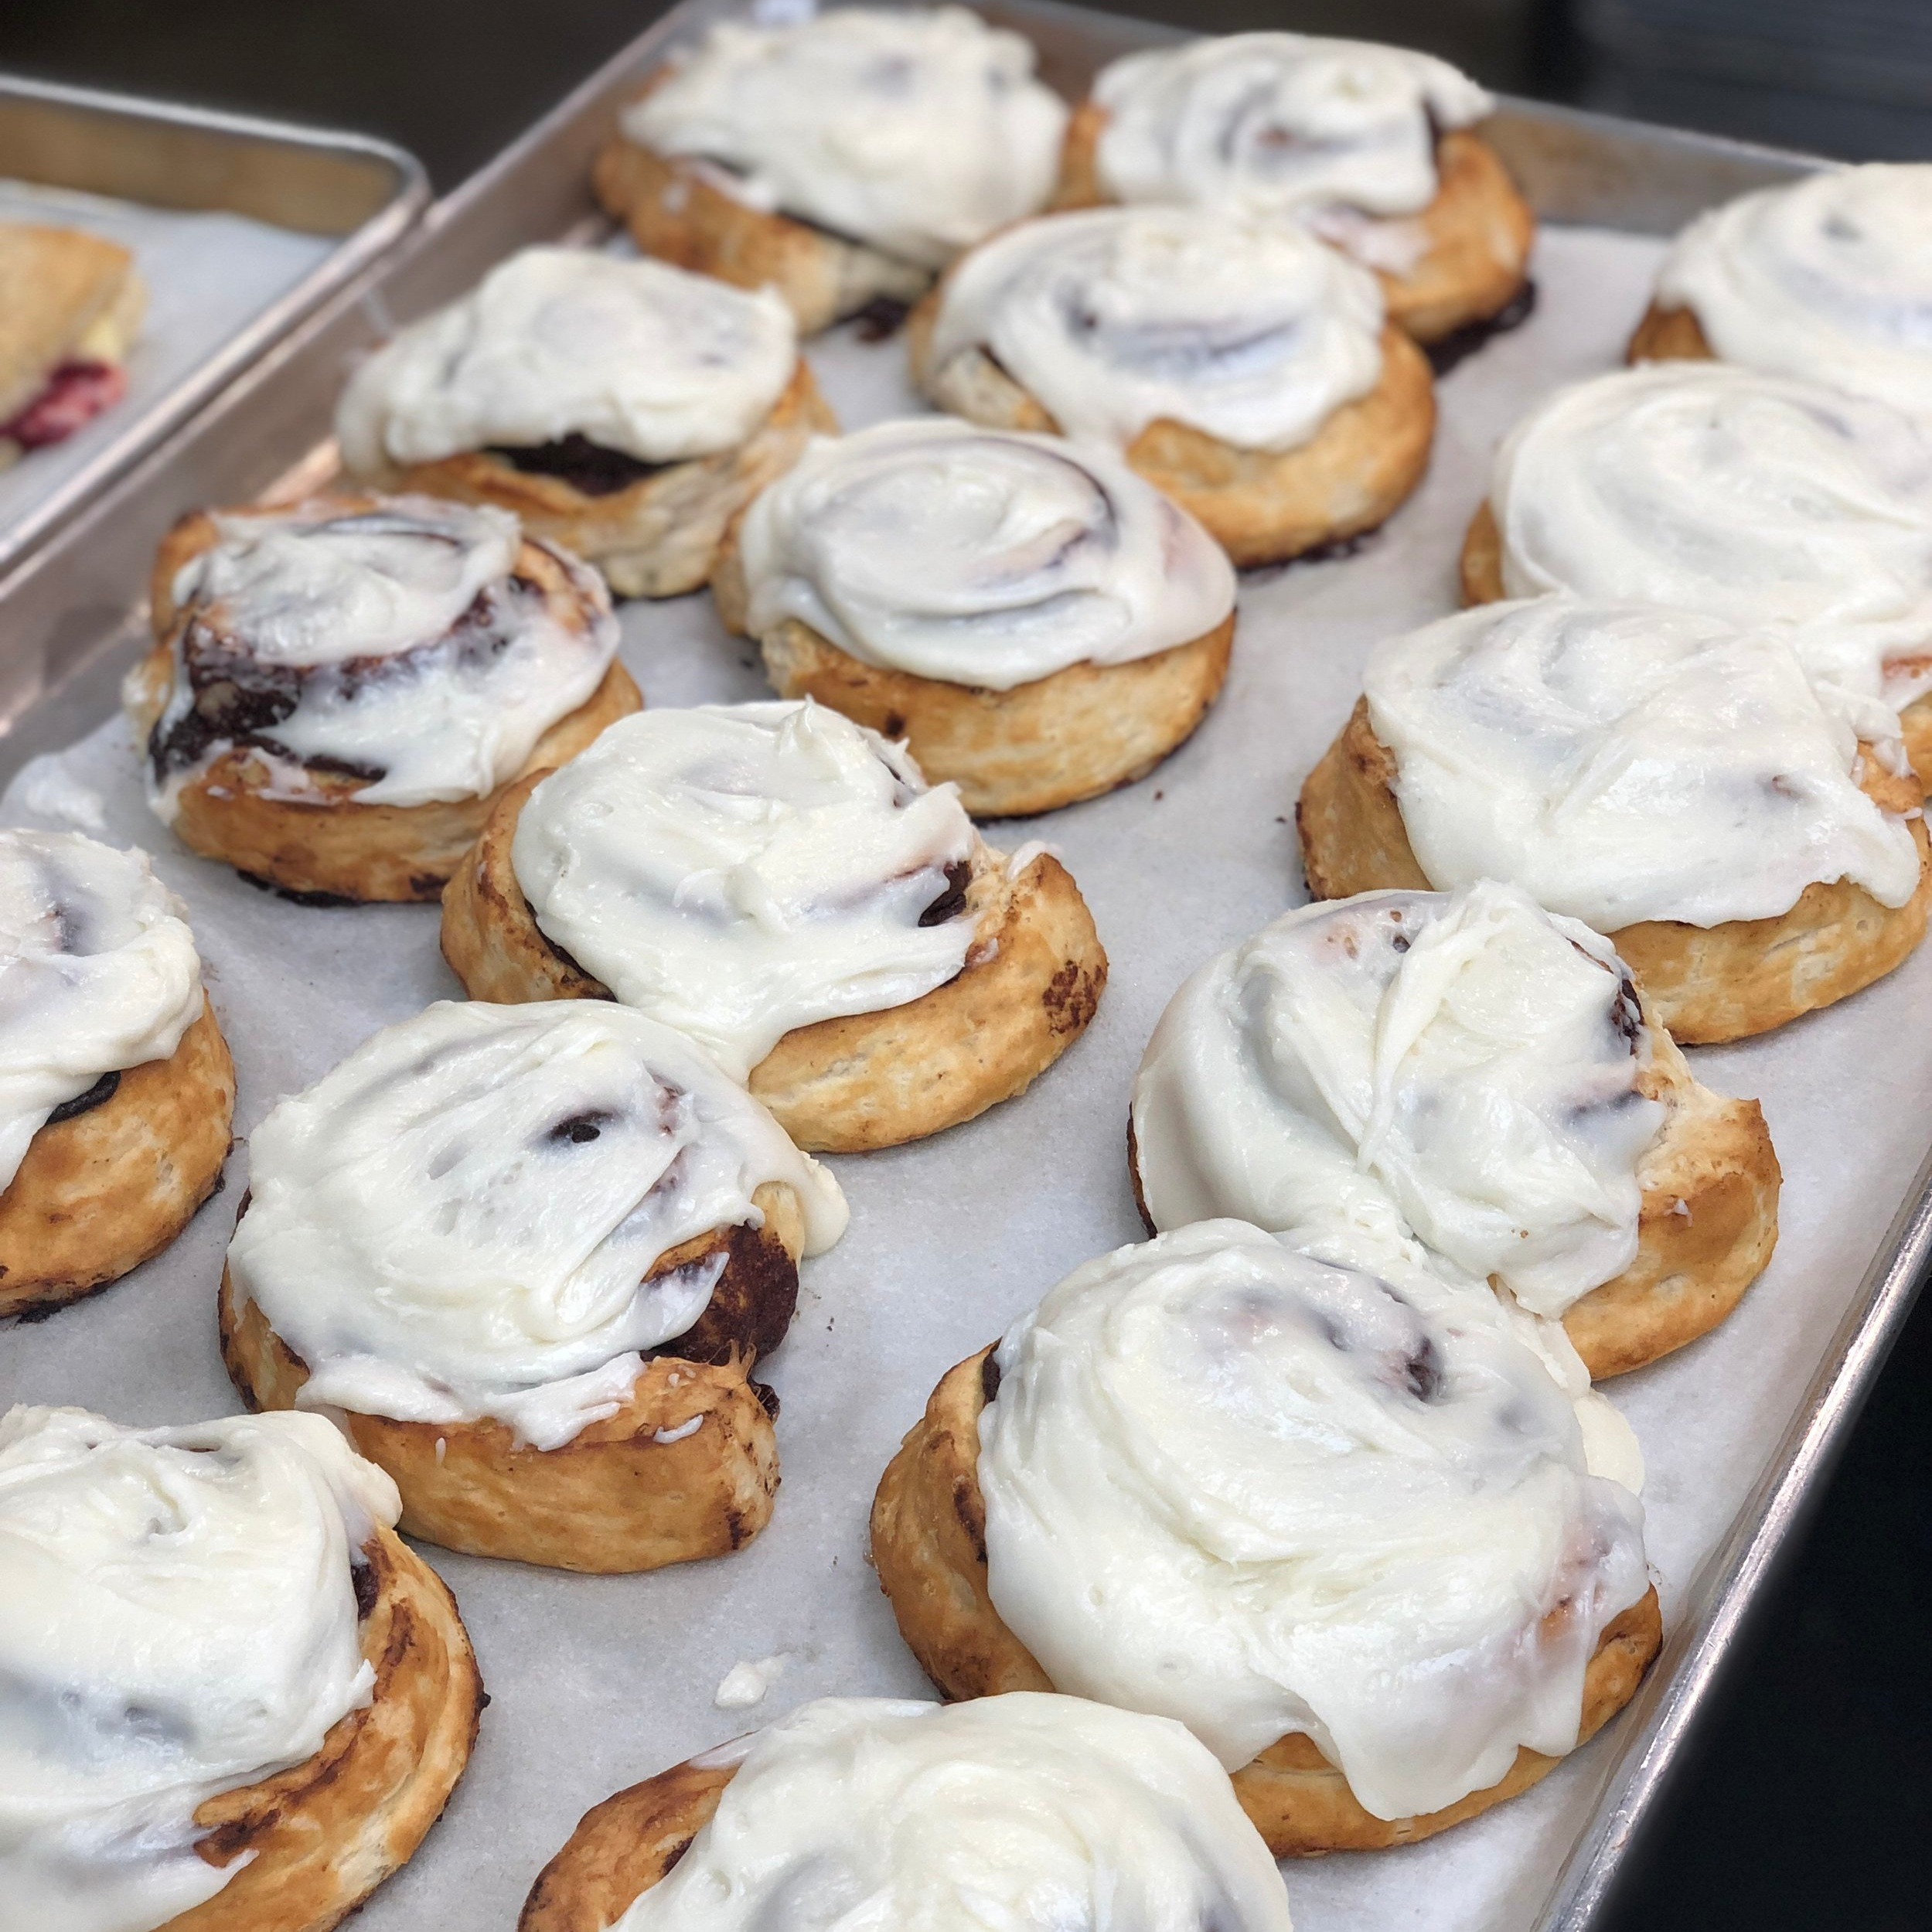 Treat yourself to a hot cinnamon roll any dayof the week. - (except Sundays!)